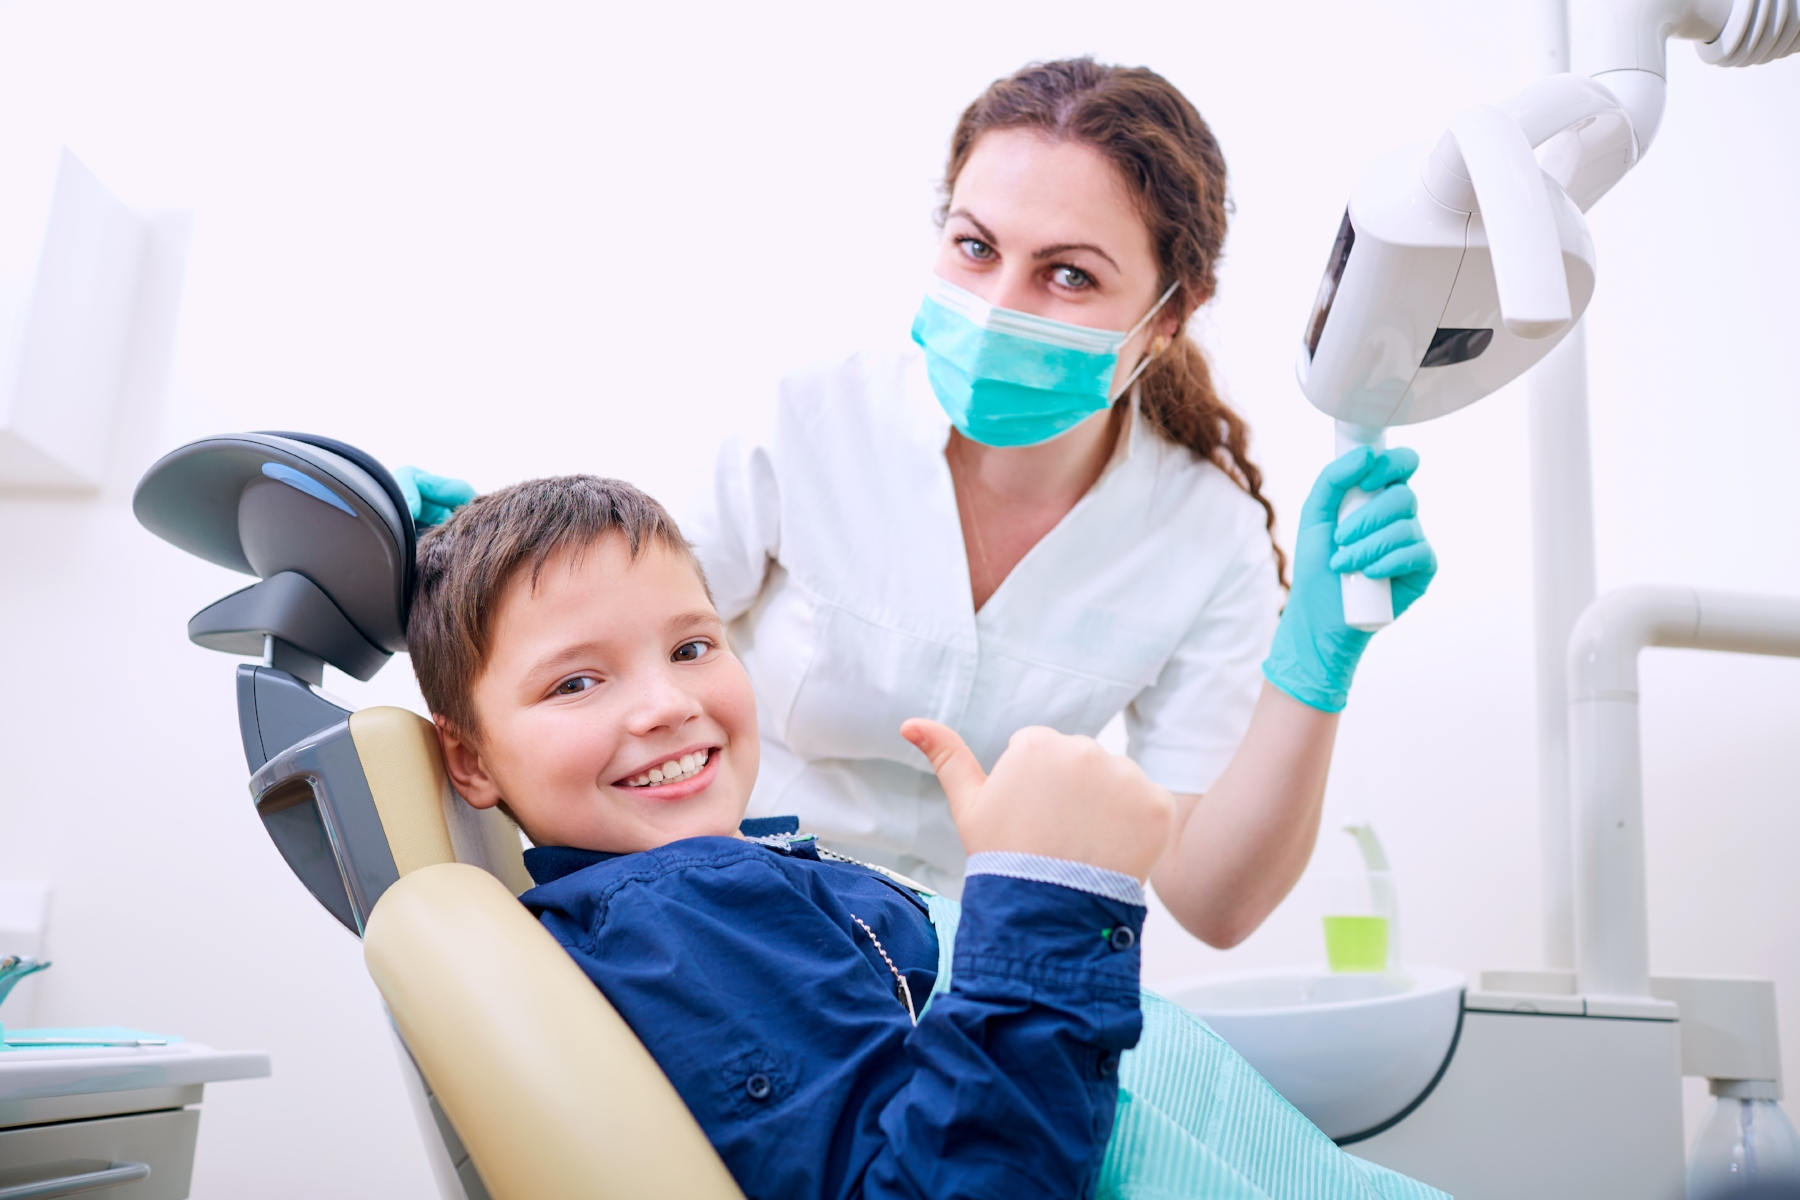 child-dentist-office-happy-08-feb-2017